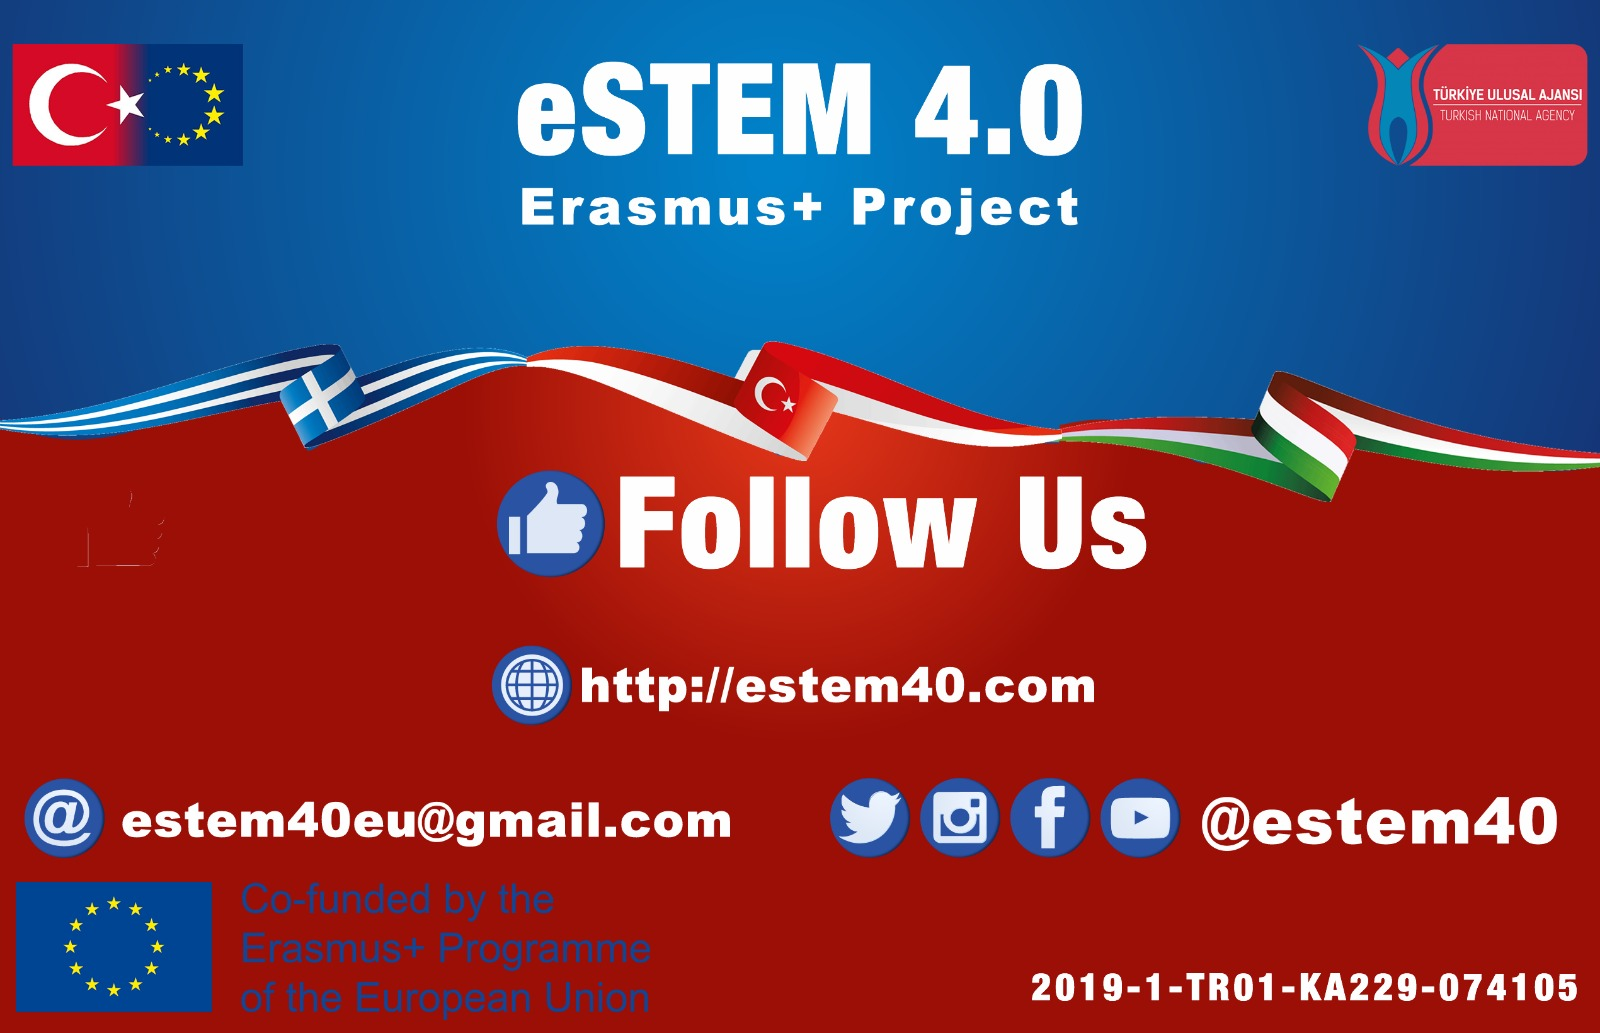 Erasmus+ Project Website